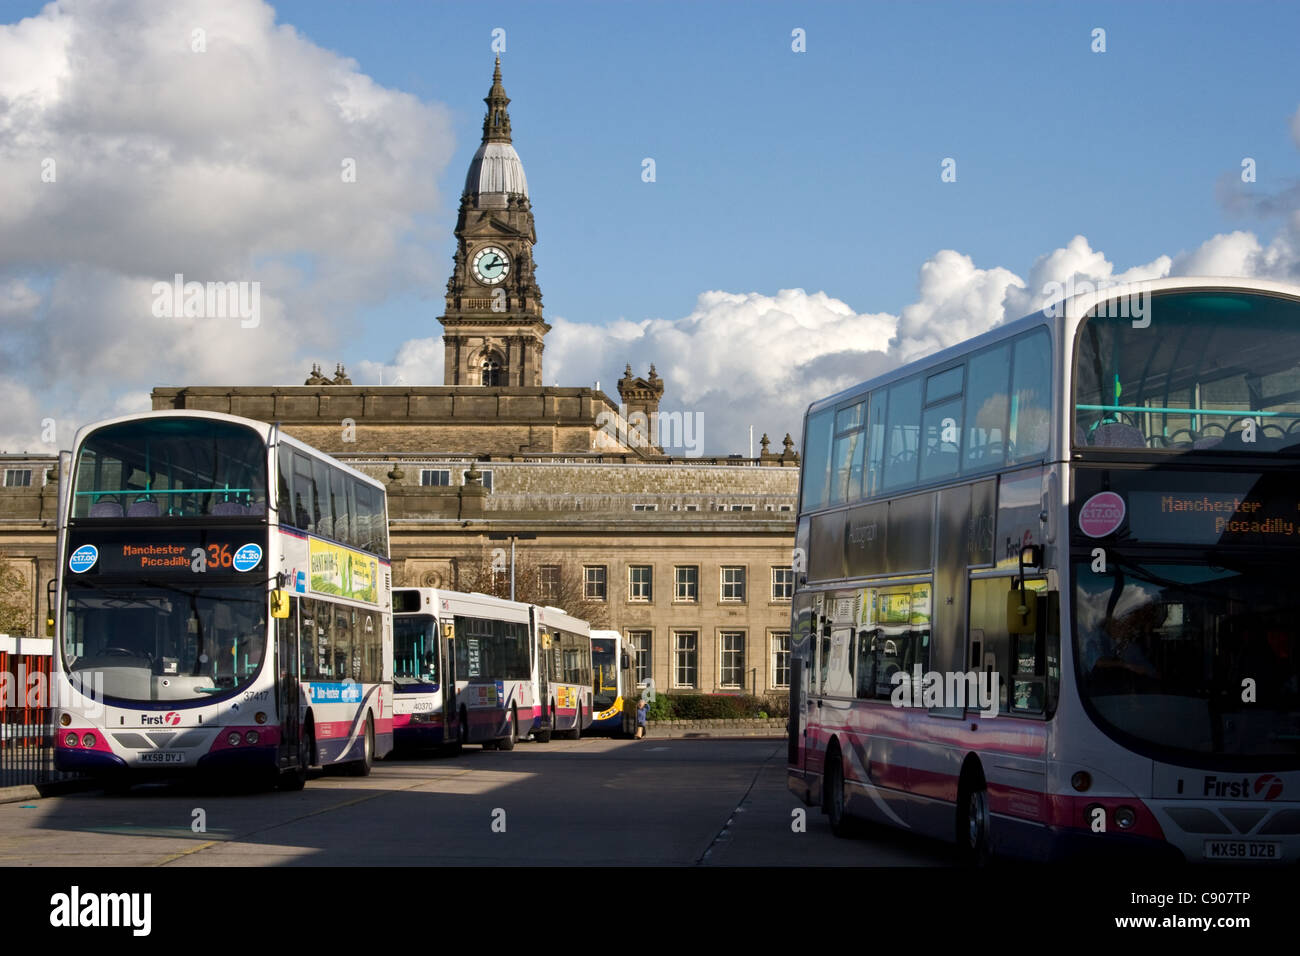 Bus Station and Town Hall beyond, Bolton, Greater Manchester, England, UK - Stock Image